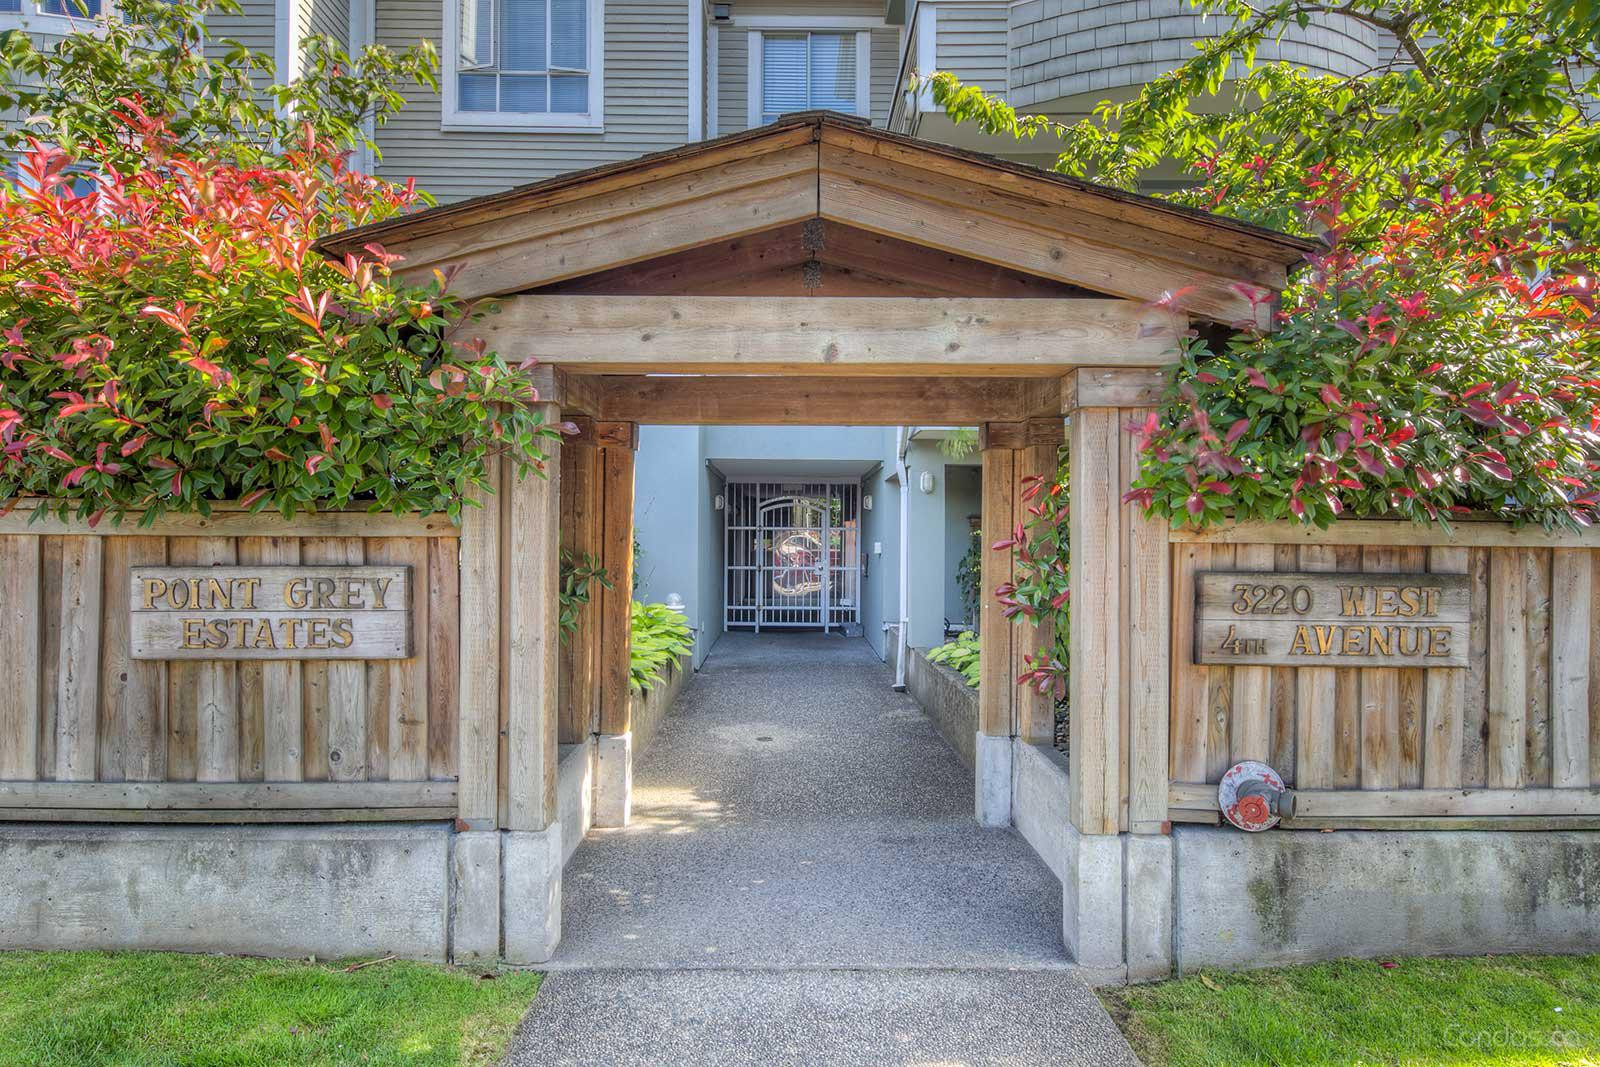 Point Grey Estates at 3220 W 4th Ave, Vancouver 1